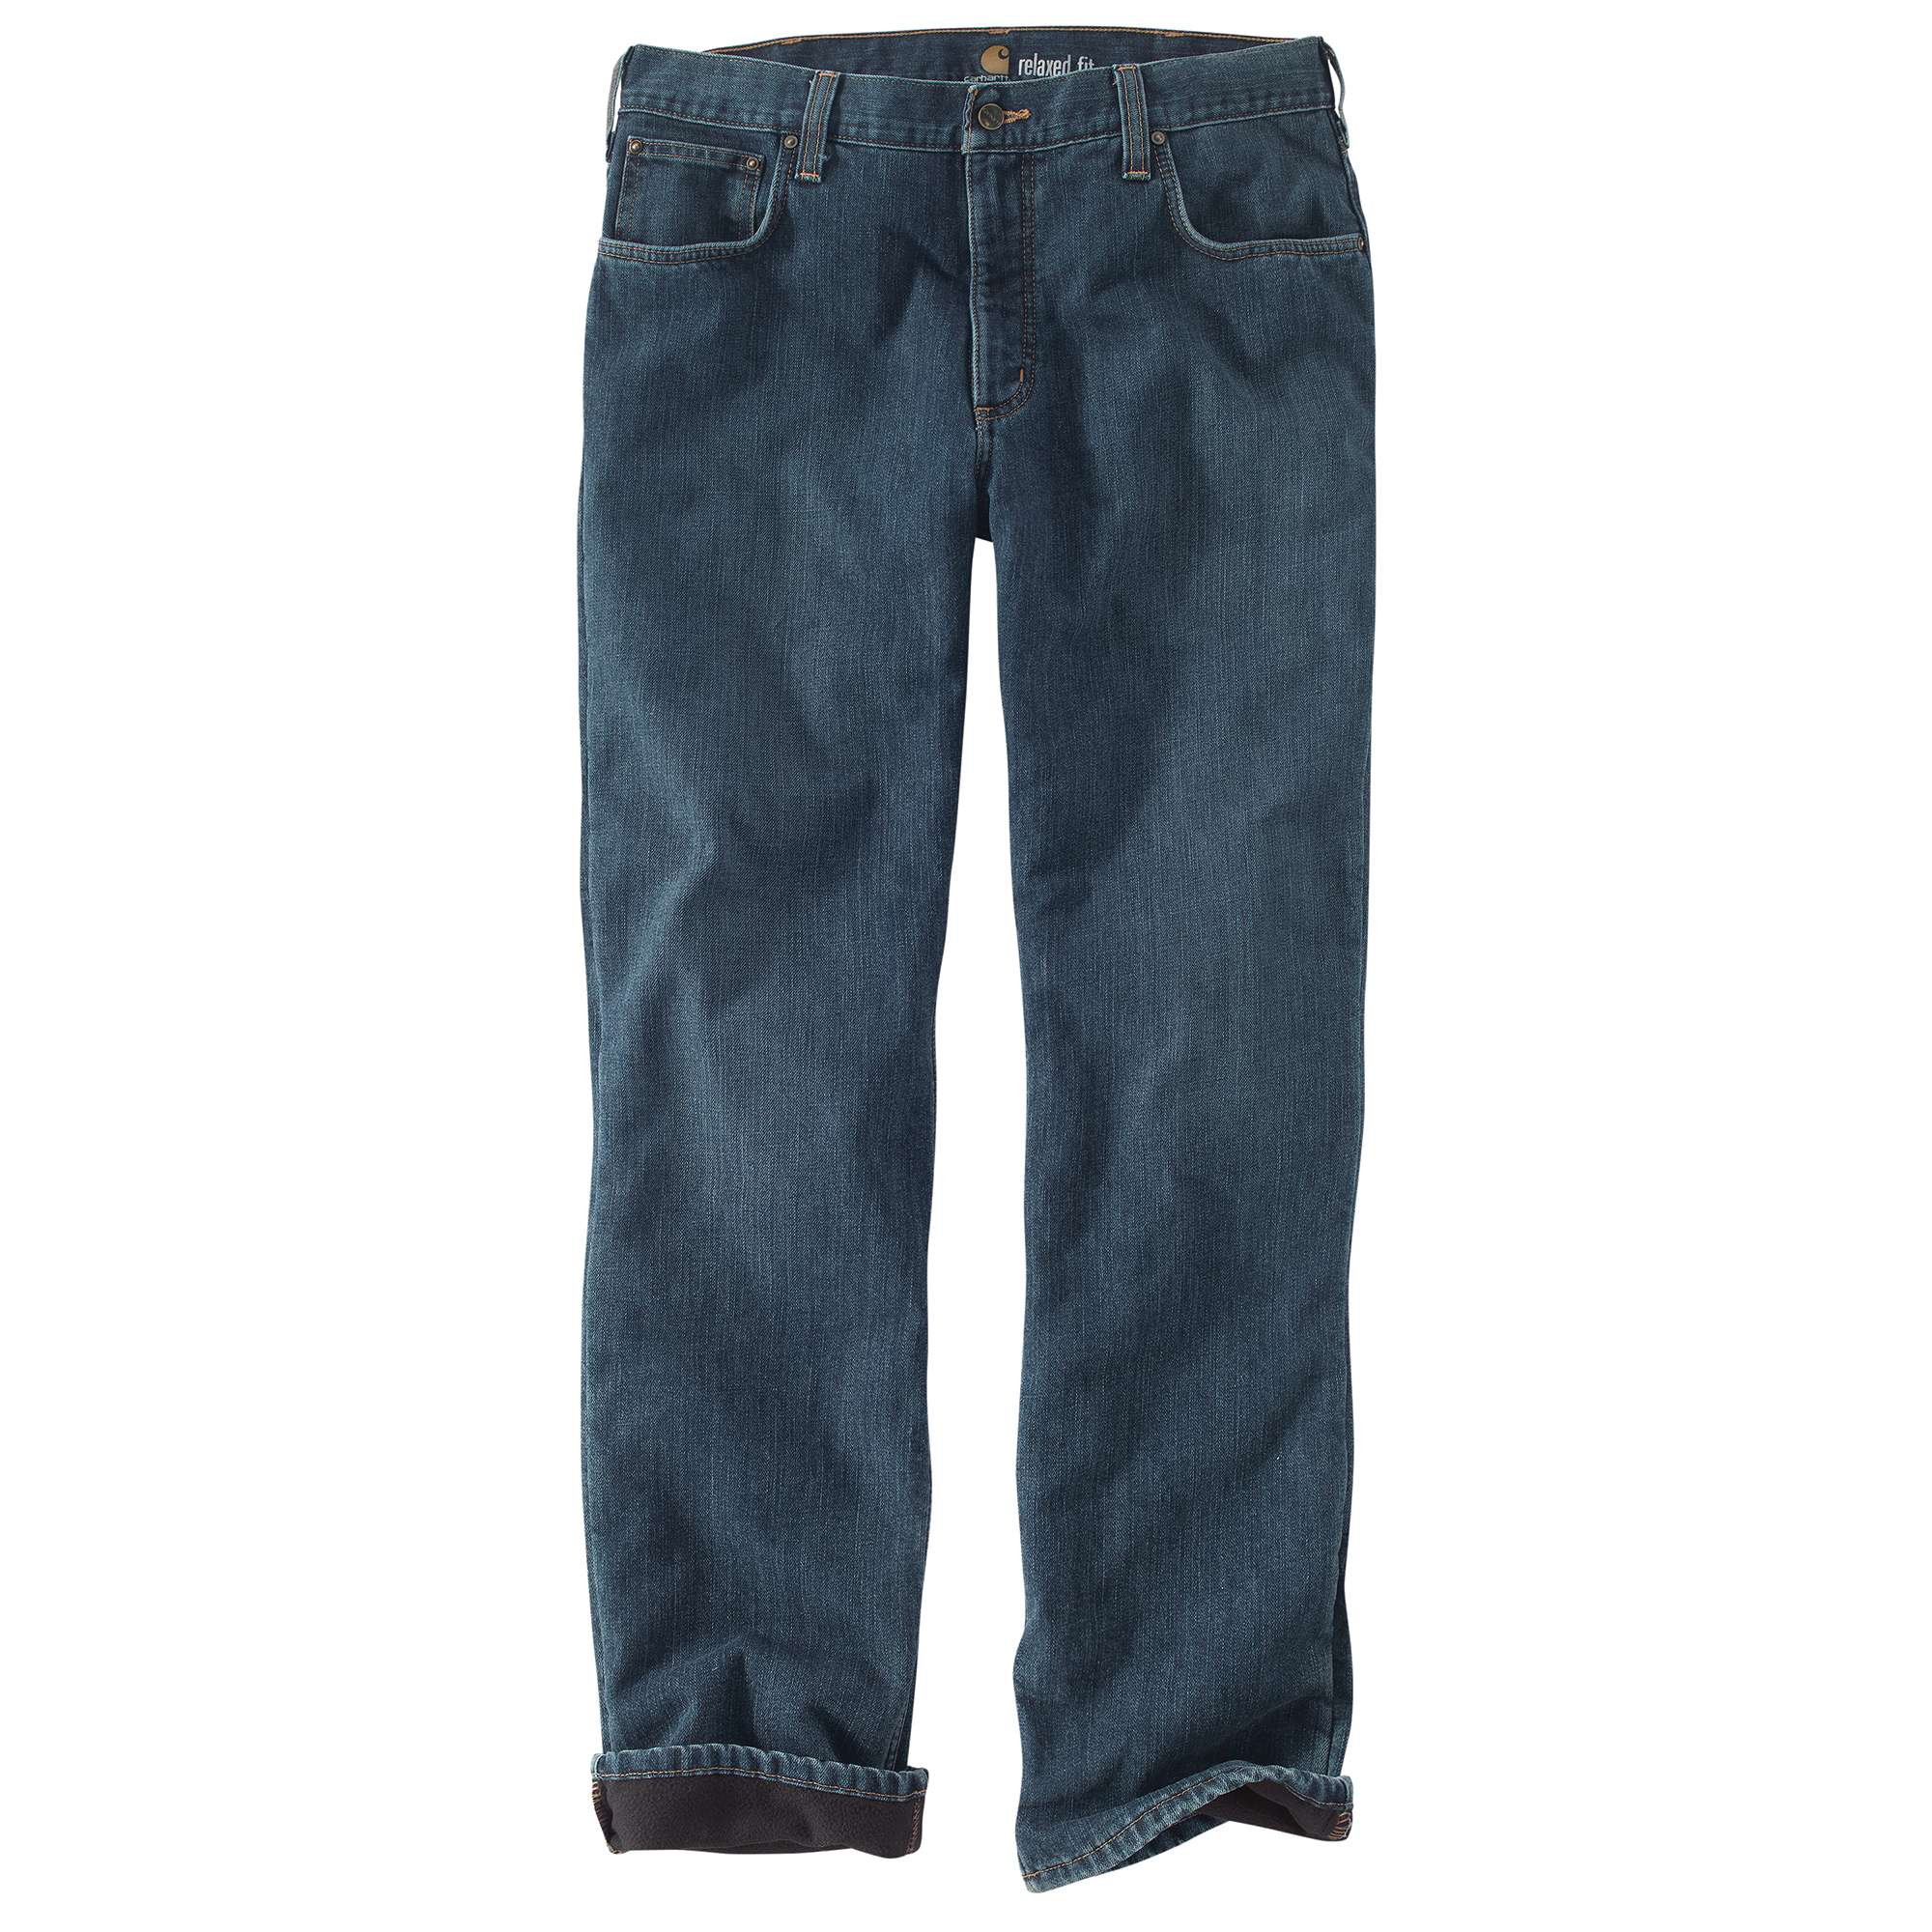 MEN'S RELAXED FIT HOLTER FLEECE LINED JEAN